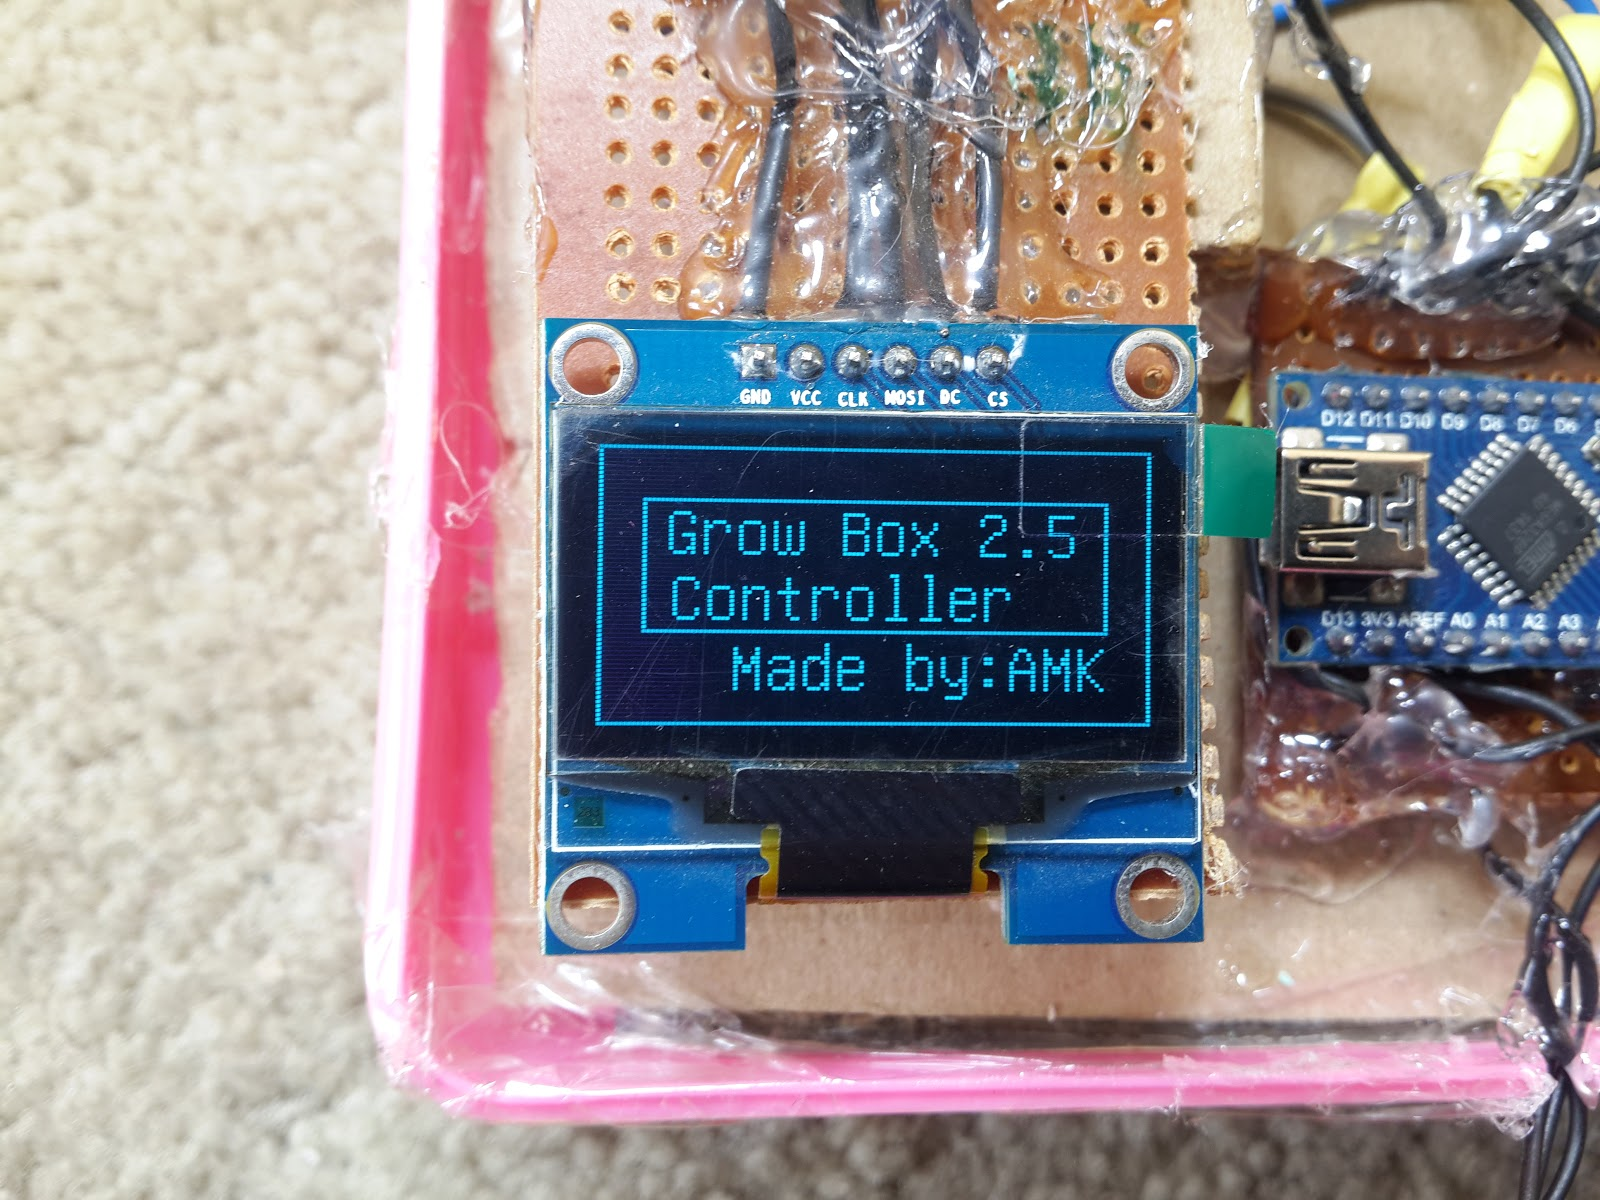 Diy projects diydo it yourself arduino nano micro it is made using an arduino nano micro controller a 10k thermistor a dht temperature and humidity sensor a real time clock a four channel relay module solutioingenieria Image collections